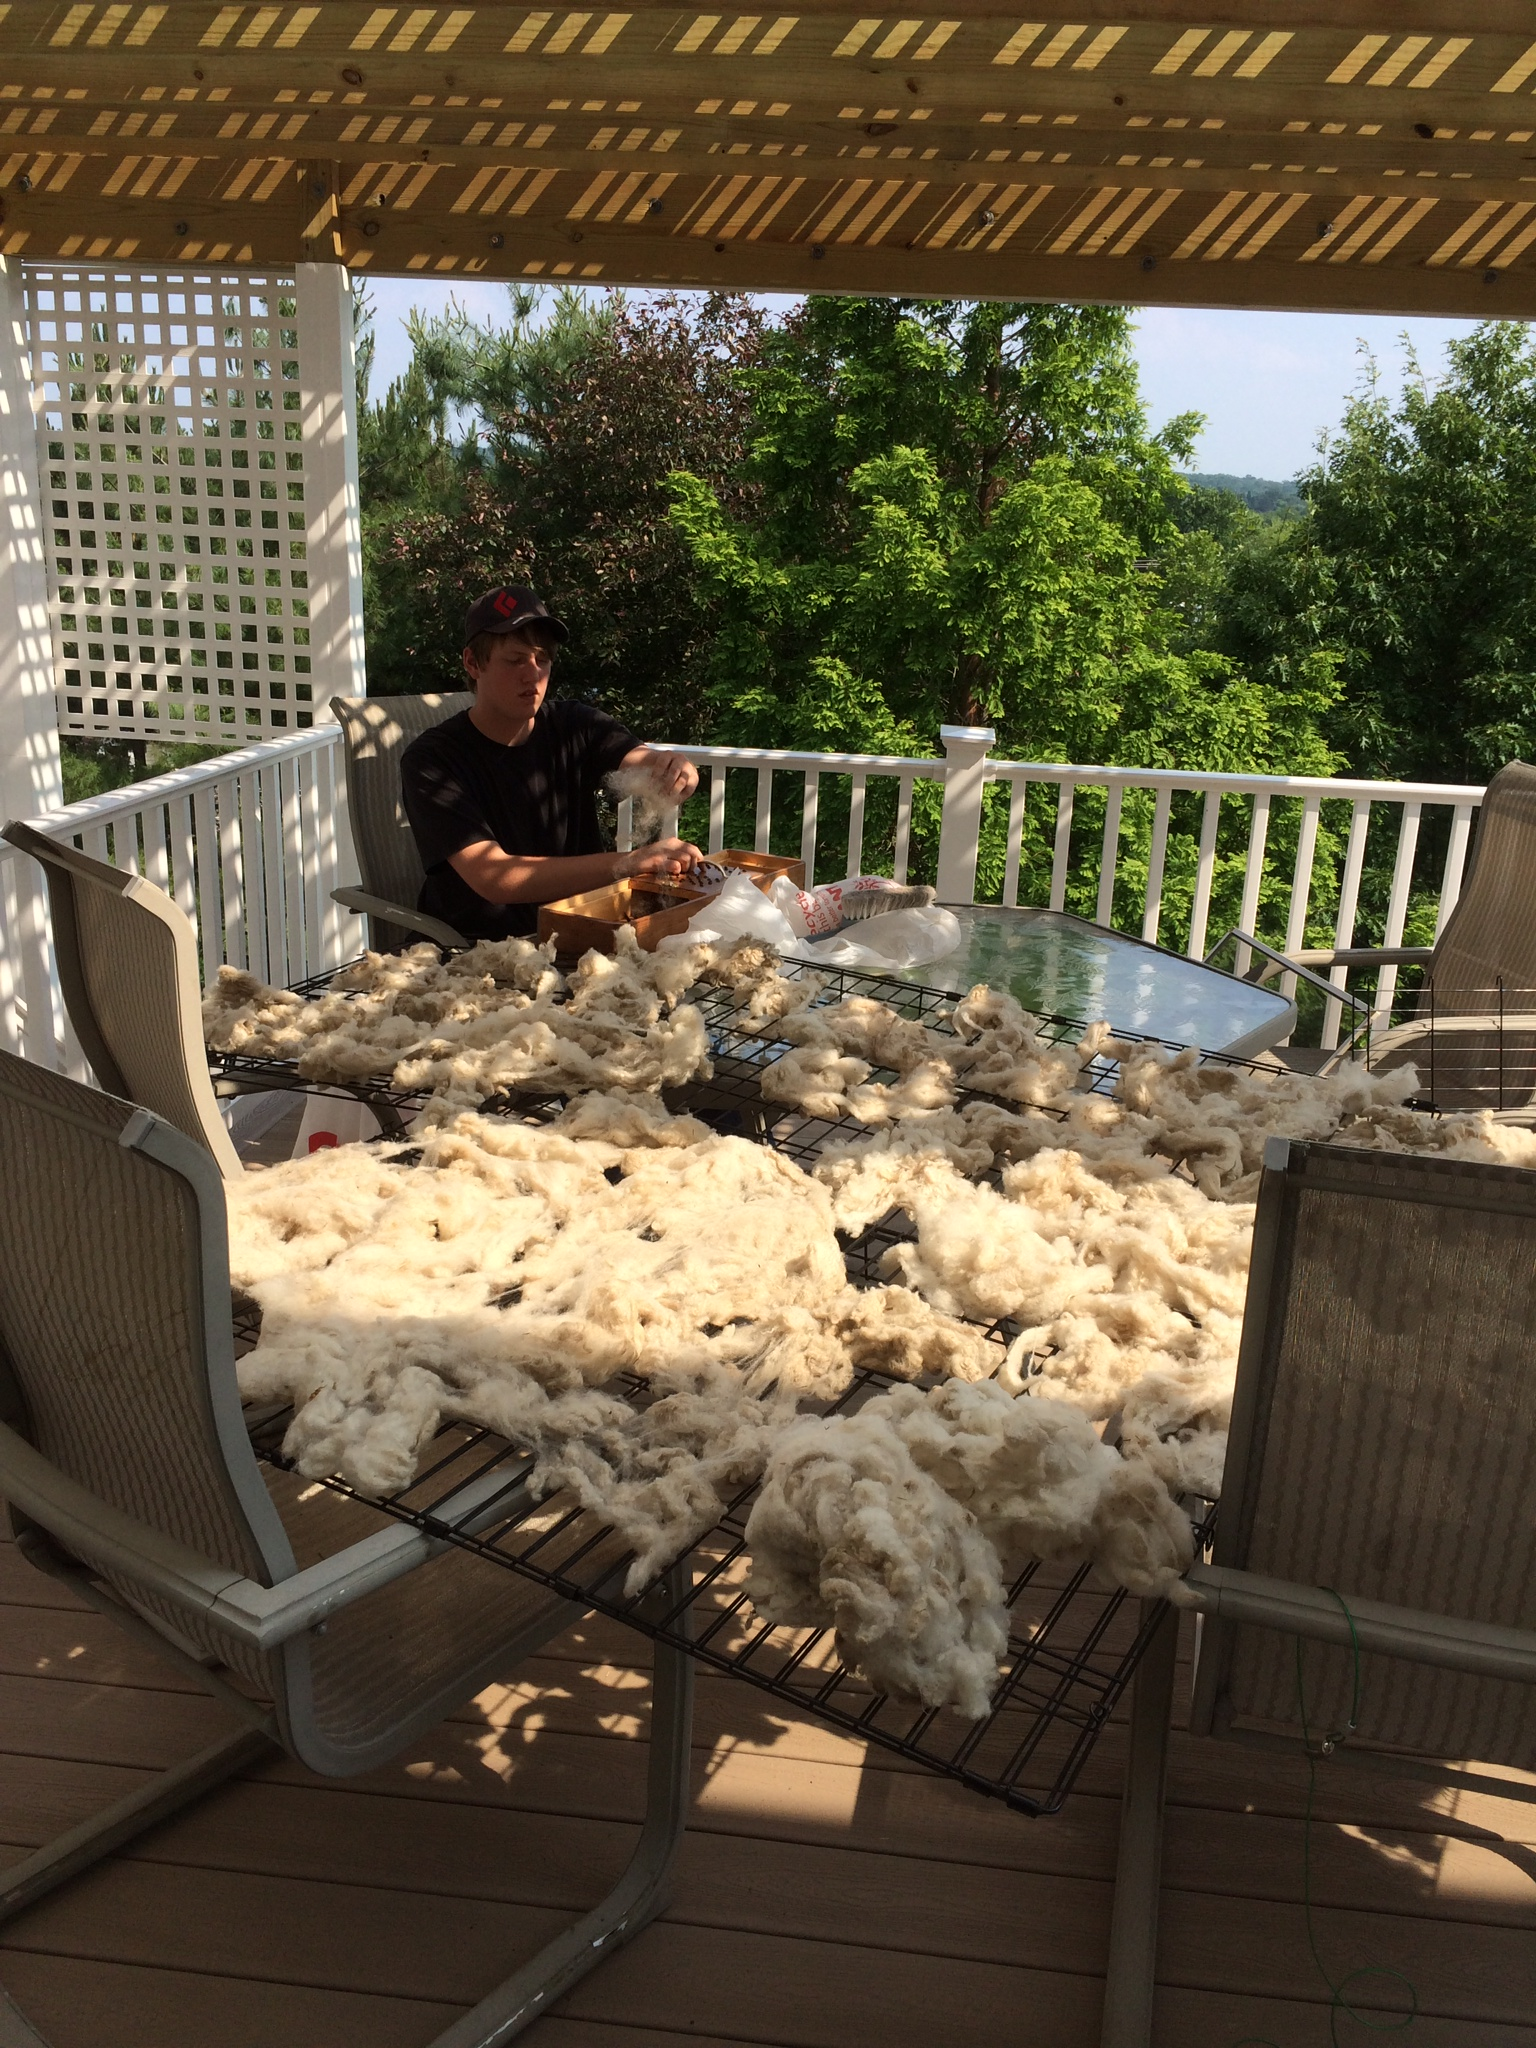 Sheep wool drying on racks